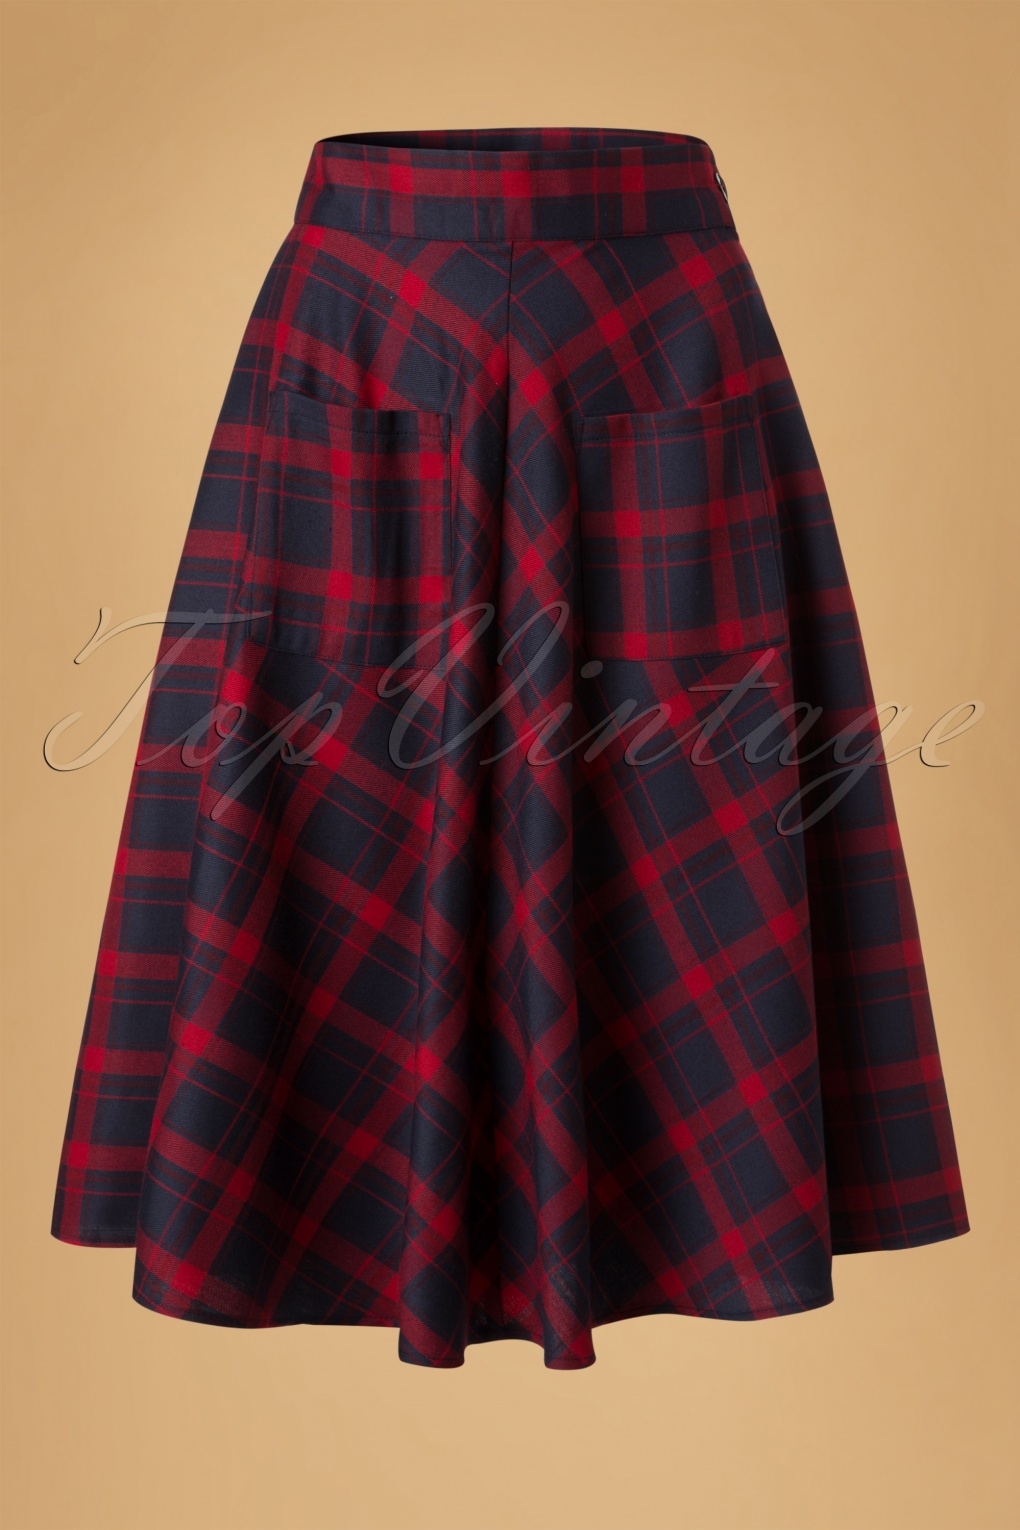 1950s Swing Skirt, Poodle Skirt, Pencil Skirts 50s Apple Of My Eye Tartan Skirt in Blue and Red £33.35 AT vintagedancer.com